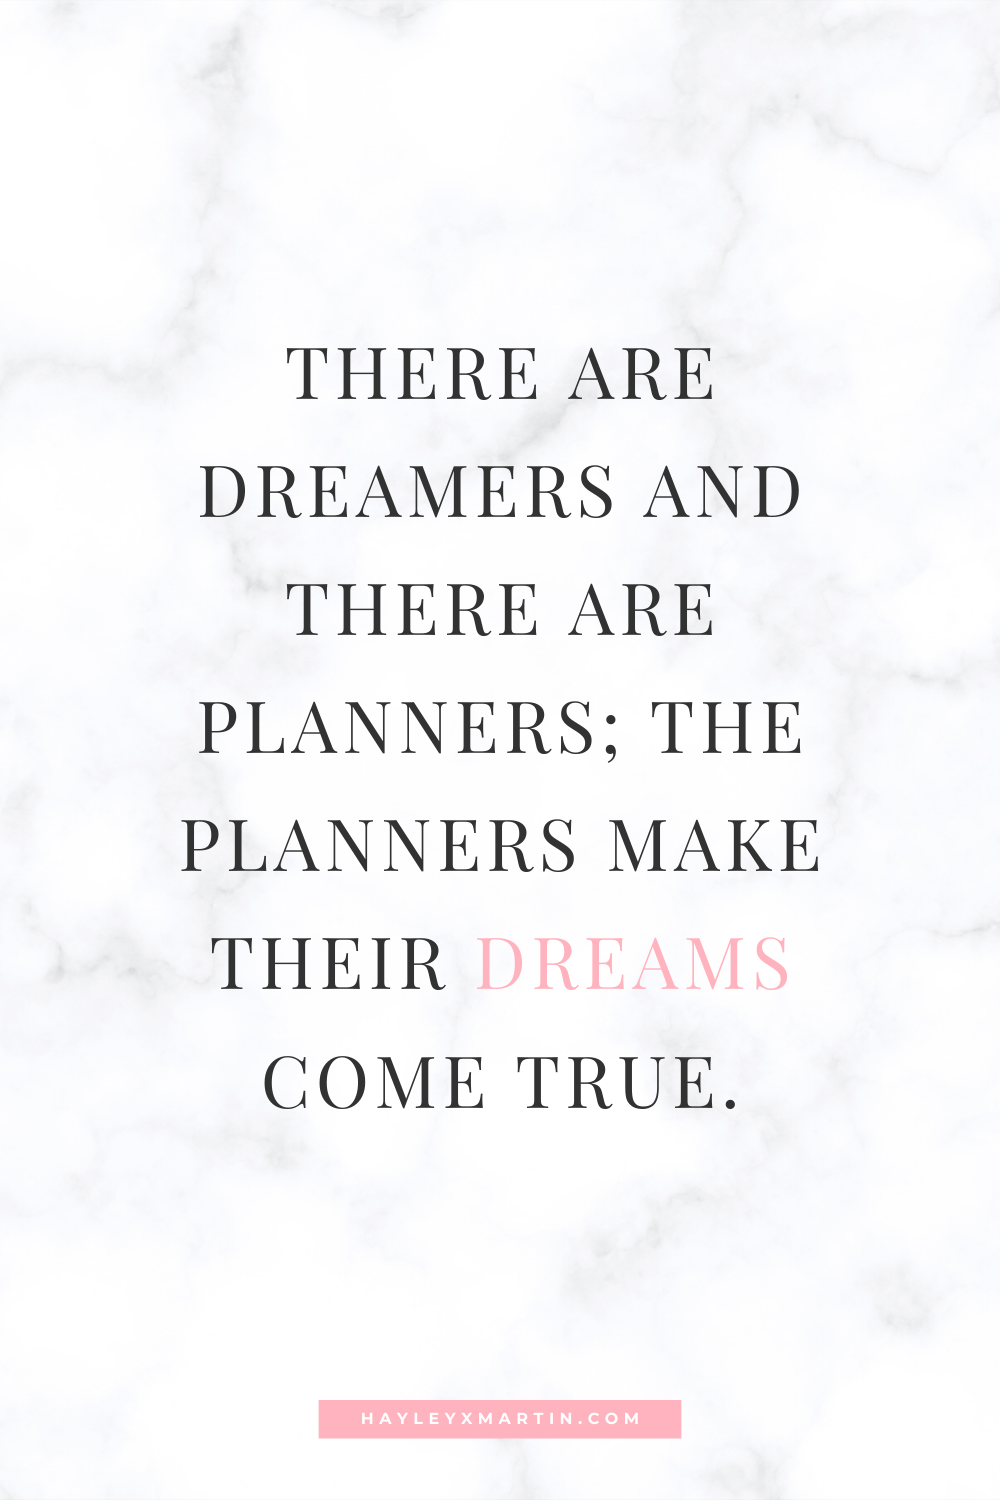 THERE ARE DREAMERS AND THERE ARE PLANNERS; THE PLANNERS MAKE THEIR DREAMS COME TRUE | HAYLEYXMARTIN